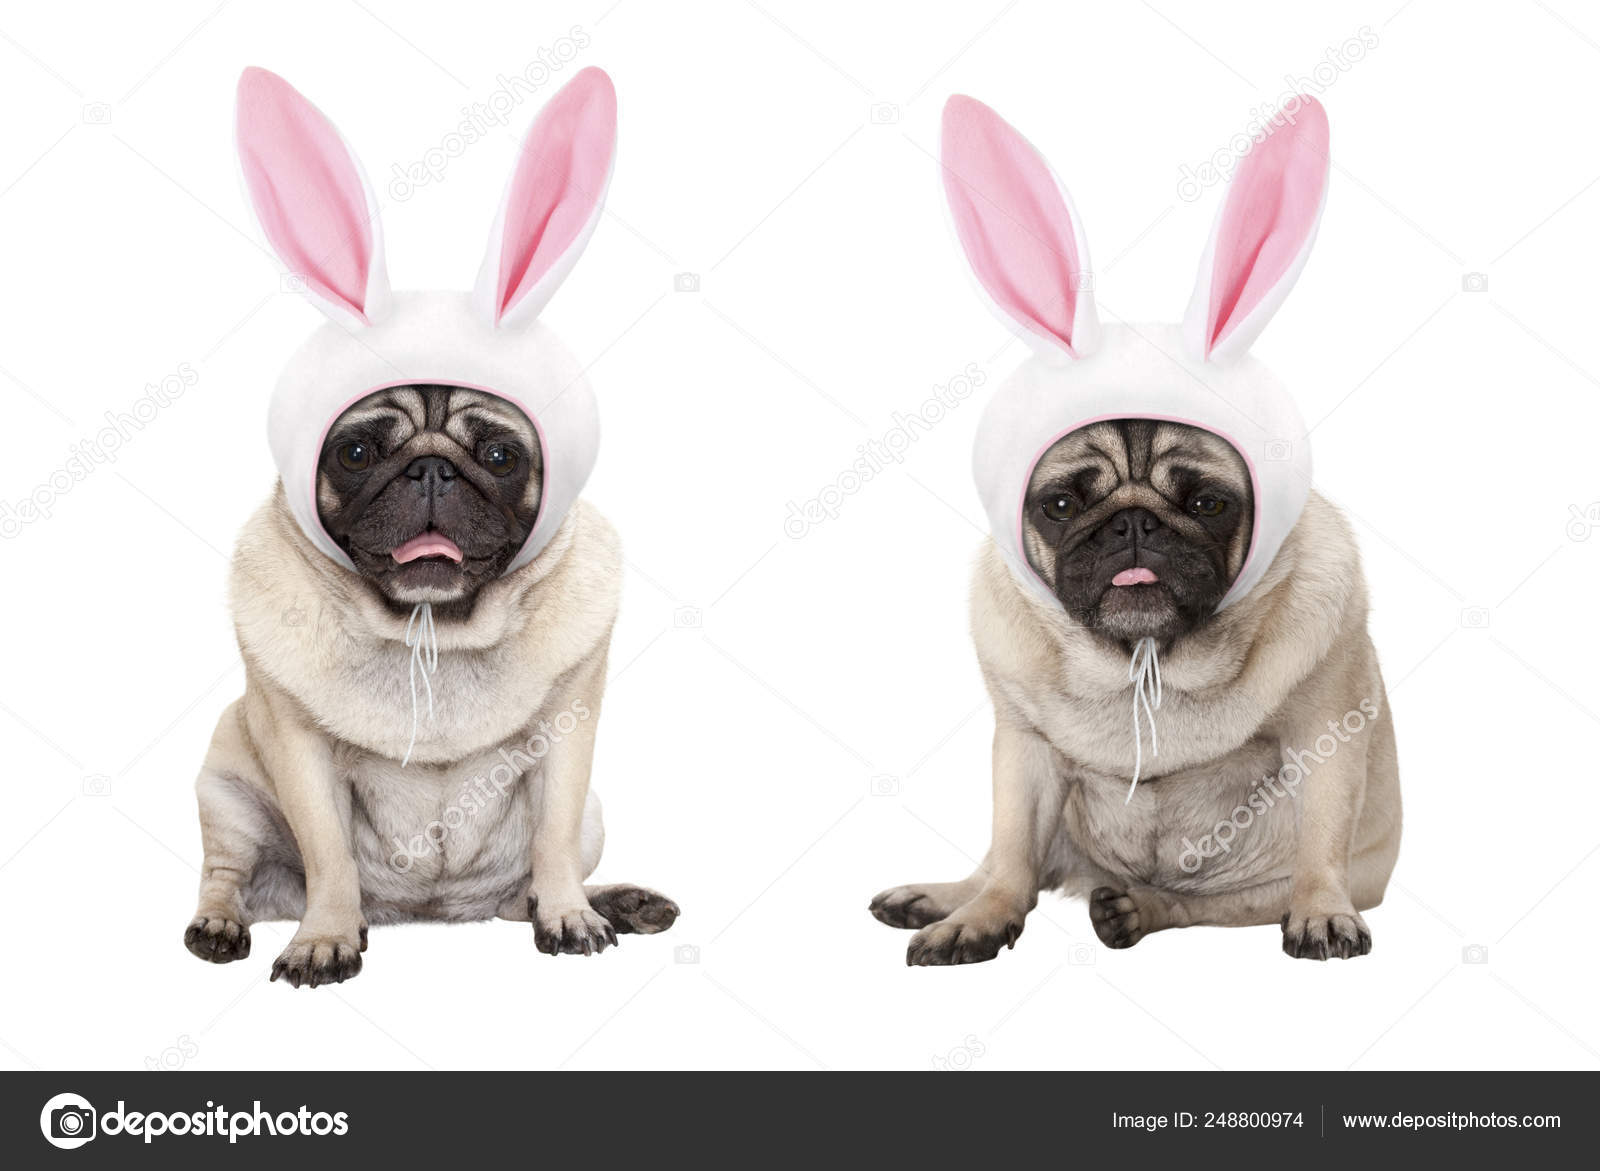 Easter Pug Puppies Funny Little Easter Pug Puppy Dogs Sitting Wearing Easter Bunny Stock Photo C Monicaclick1 248800974